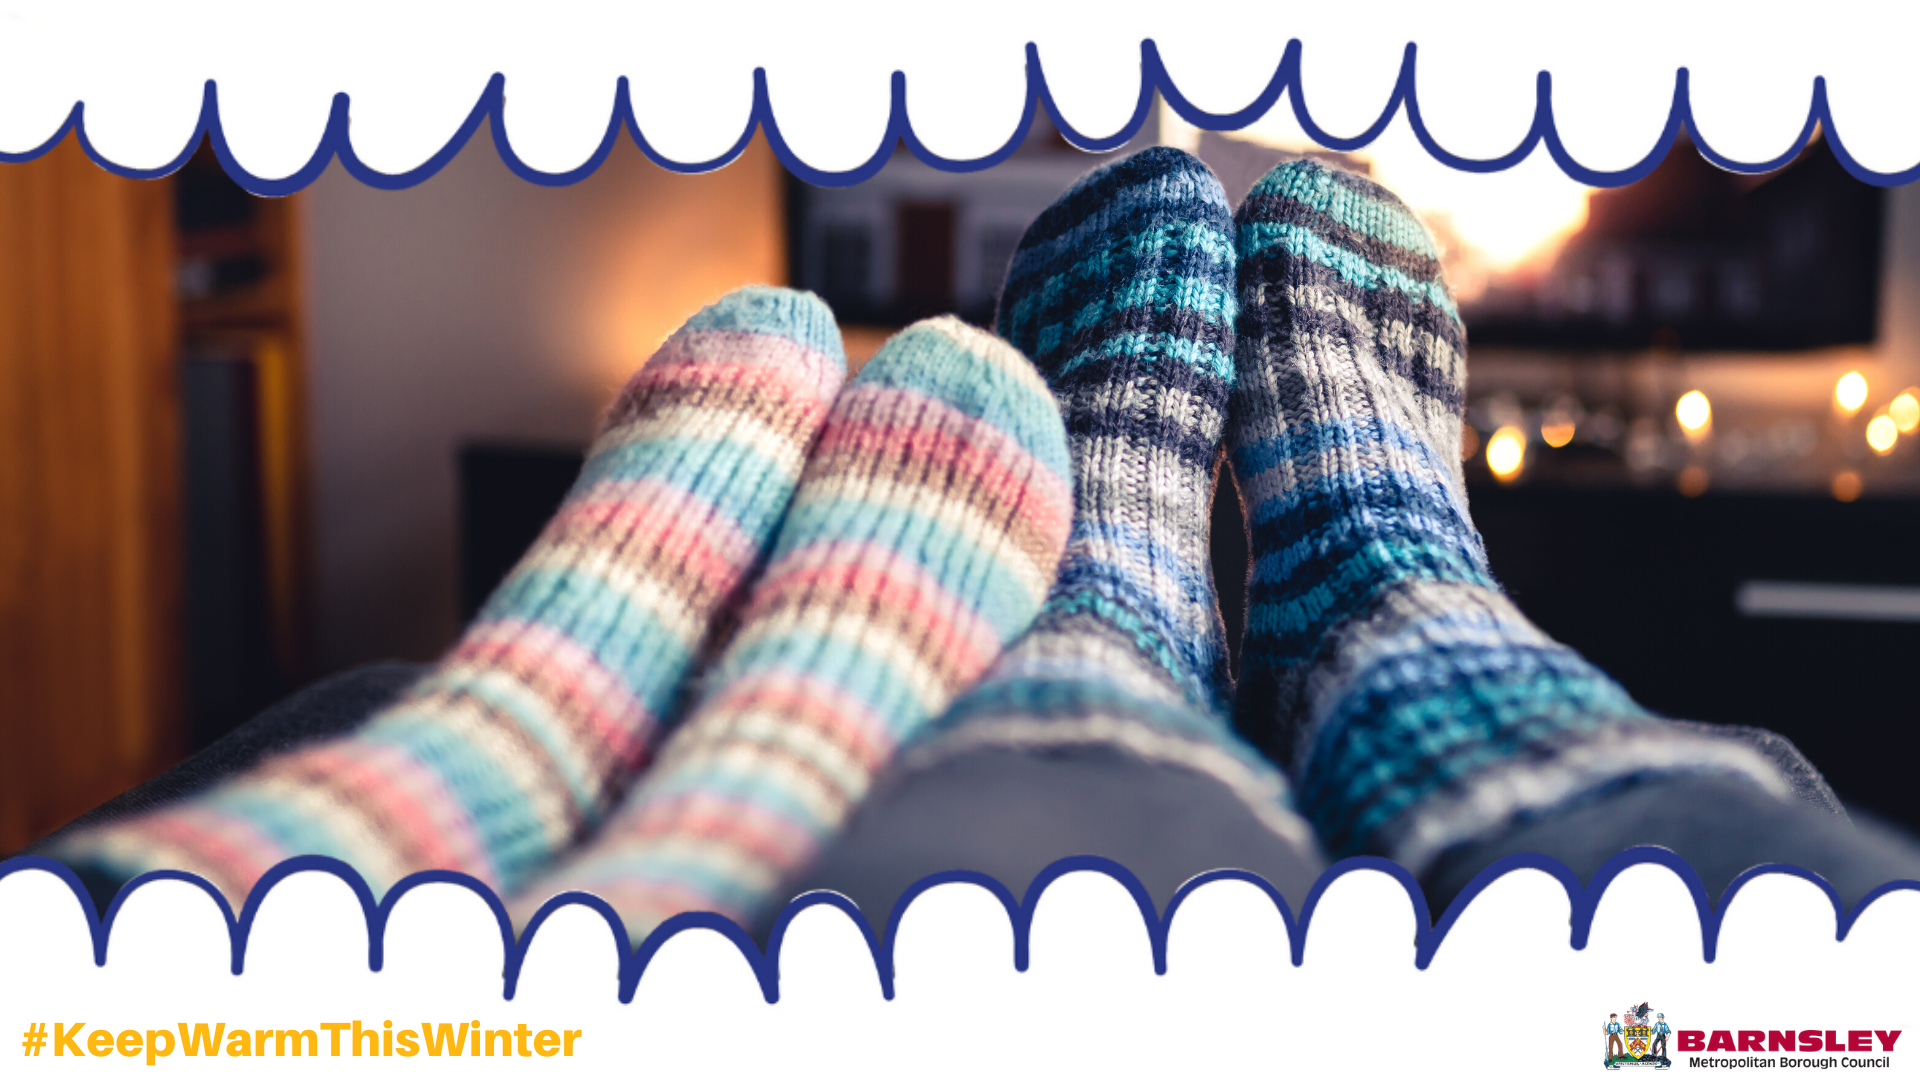 Warm home with fluffy socks